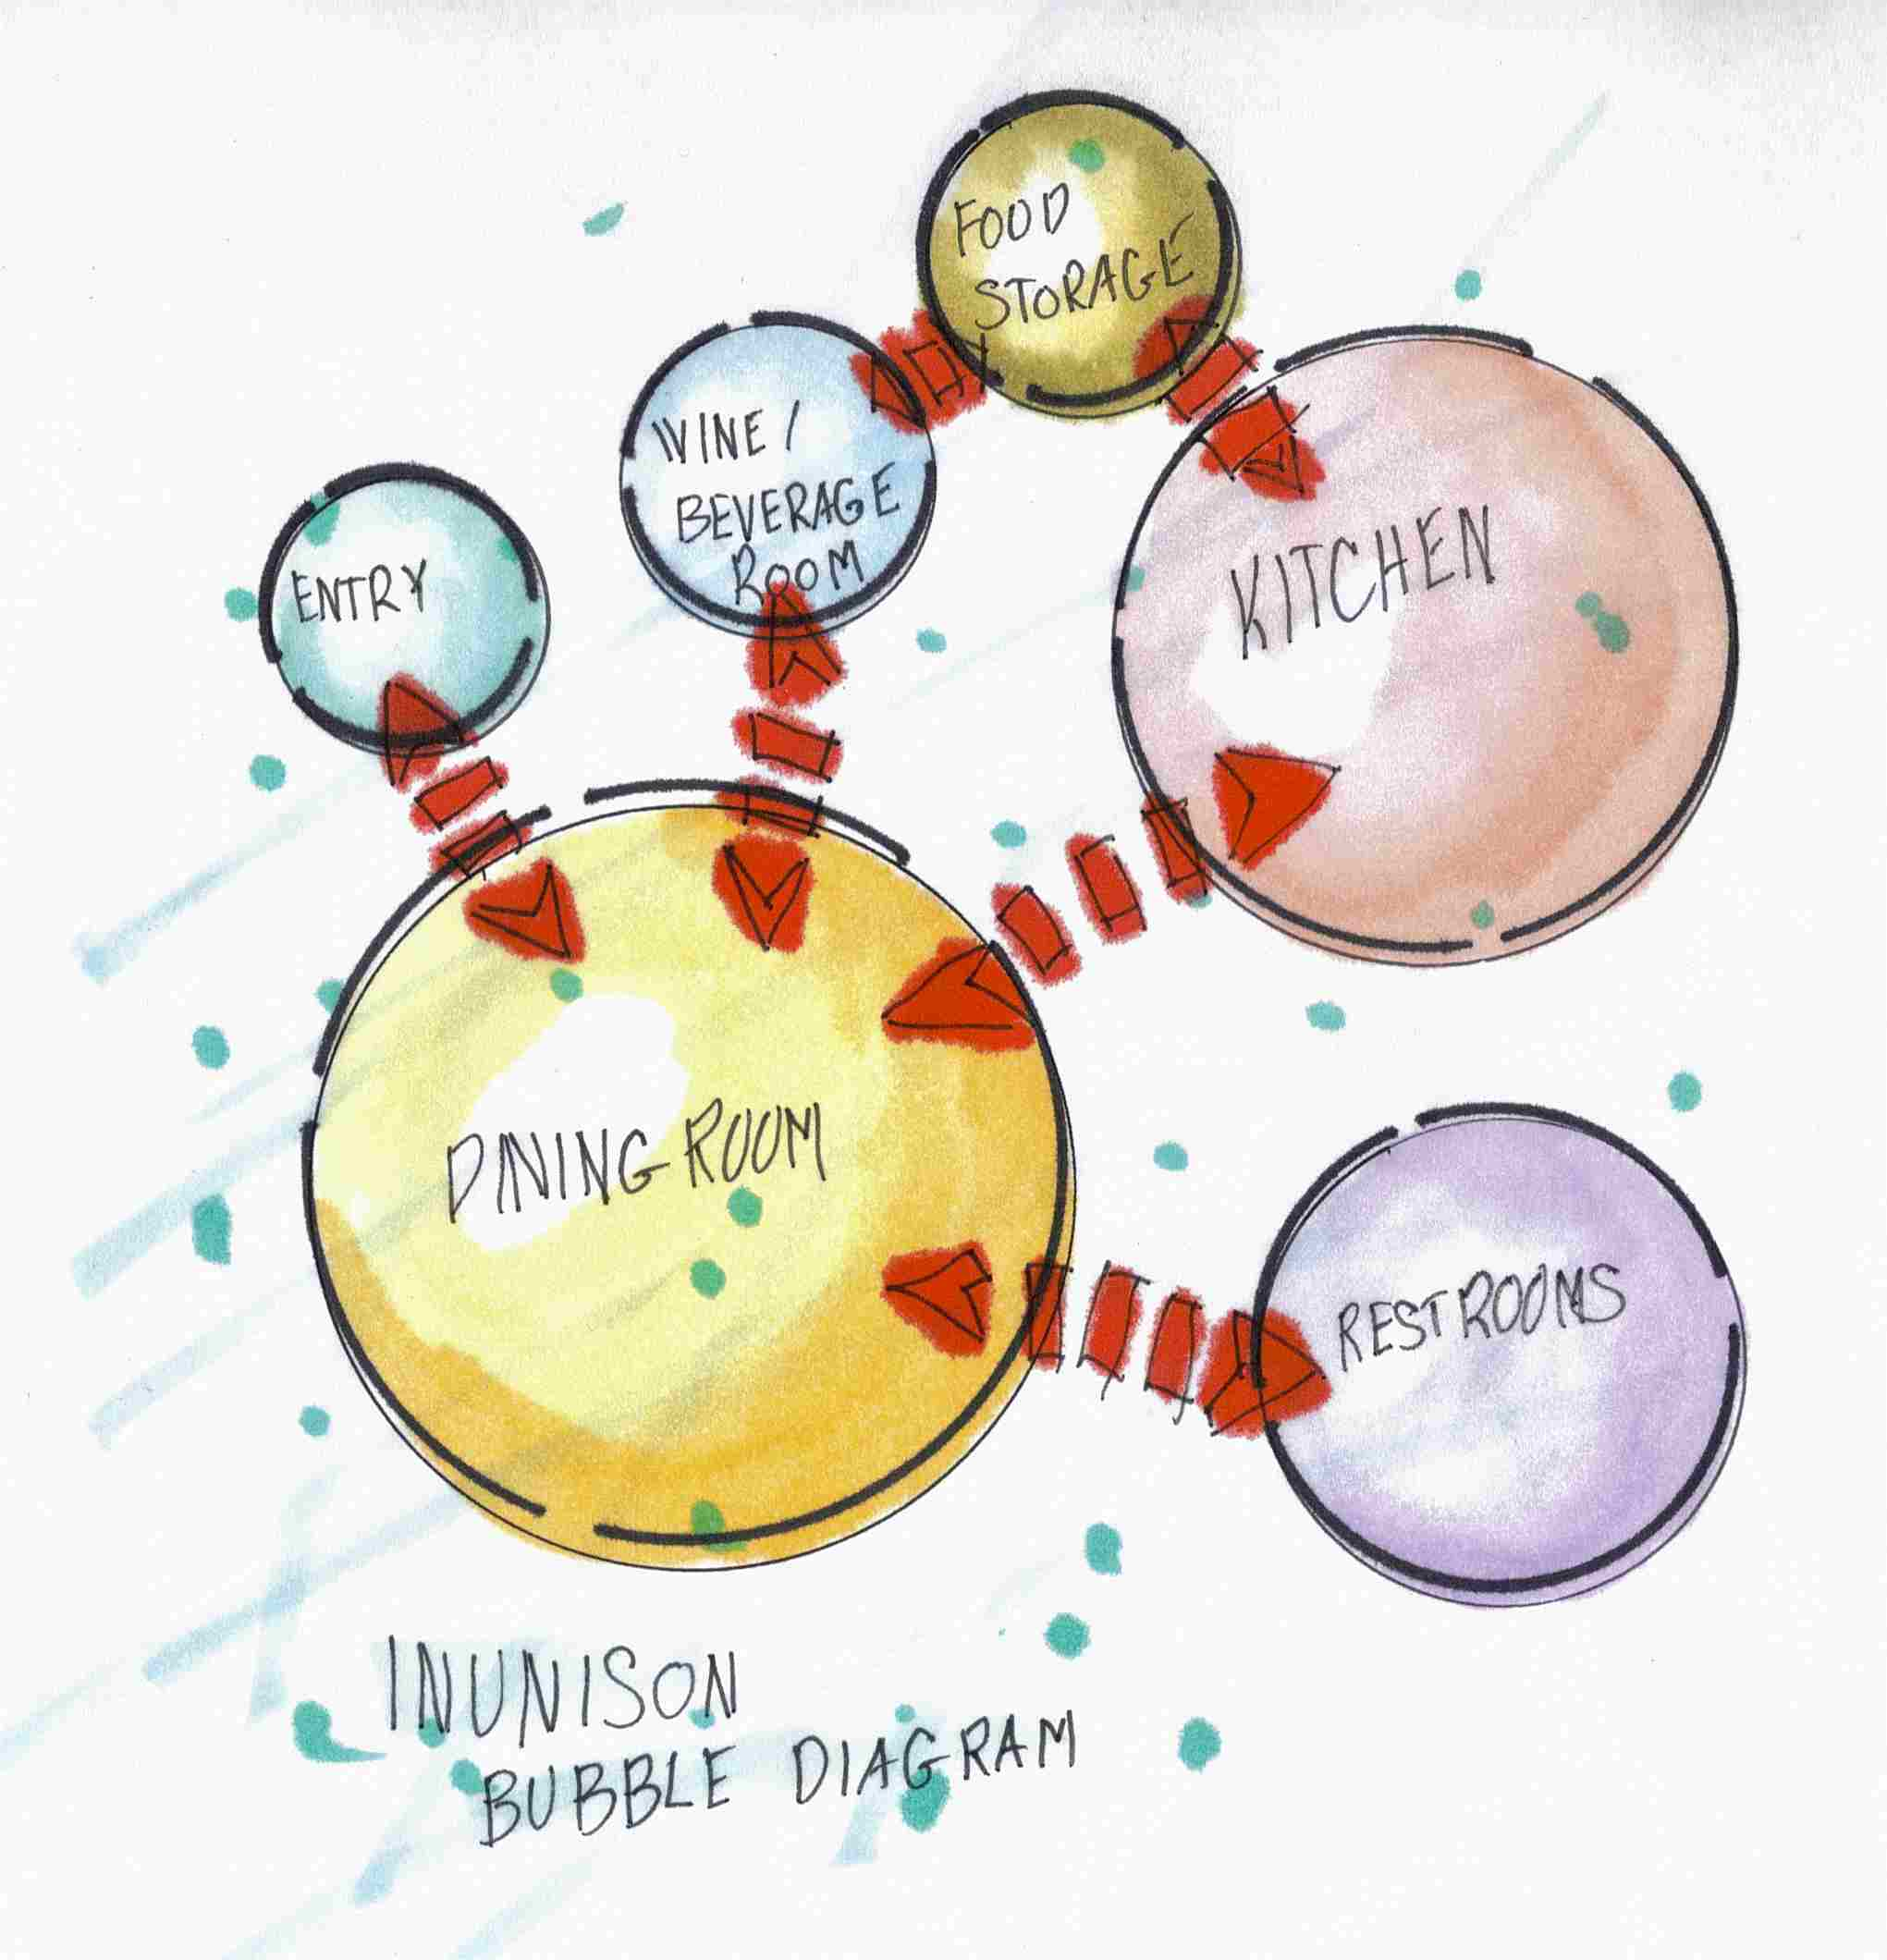 All sizes inunison bubble diagram flickr photo sharing download download the original size of this photo ccuart Images